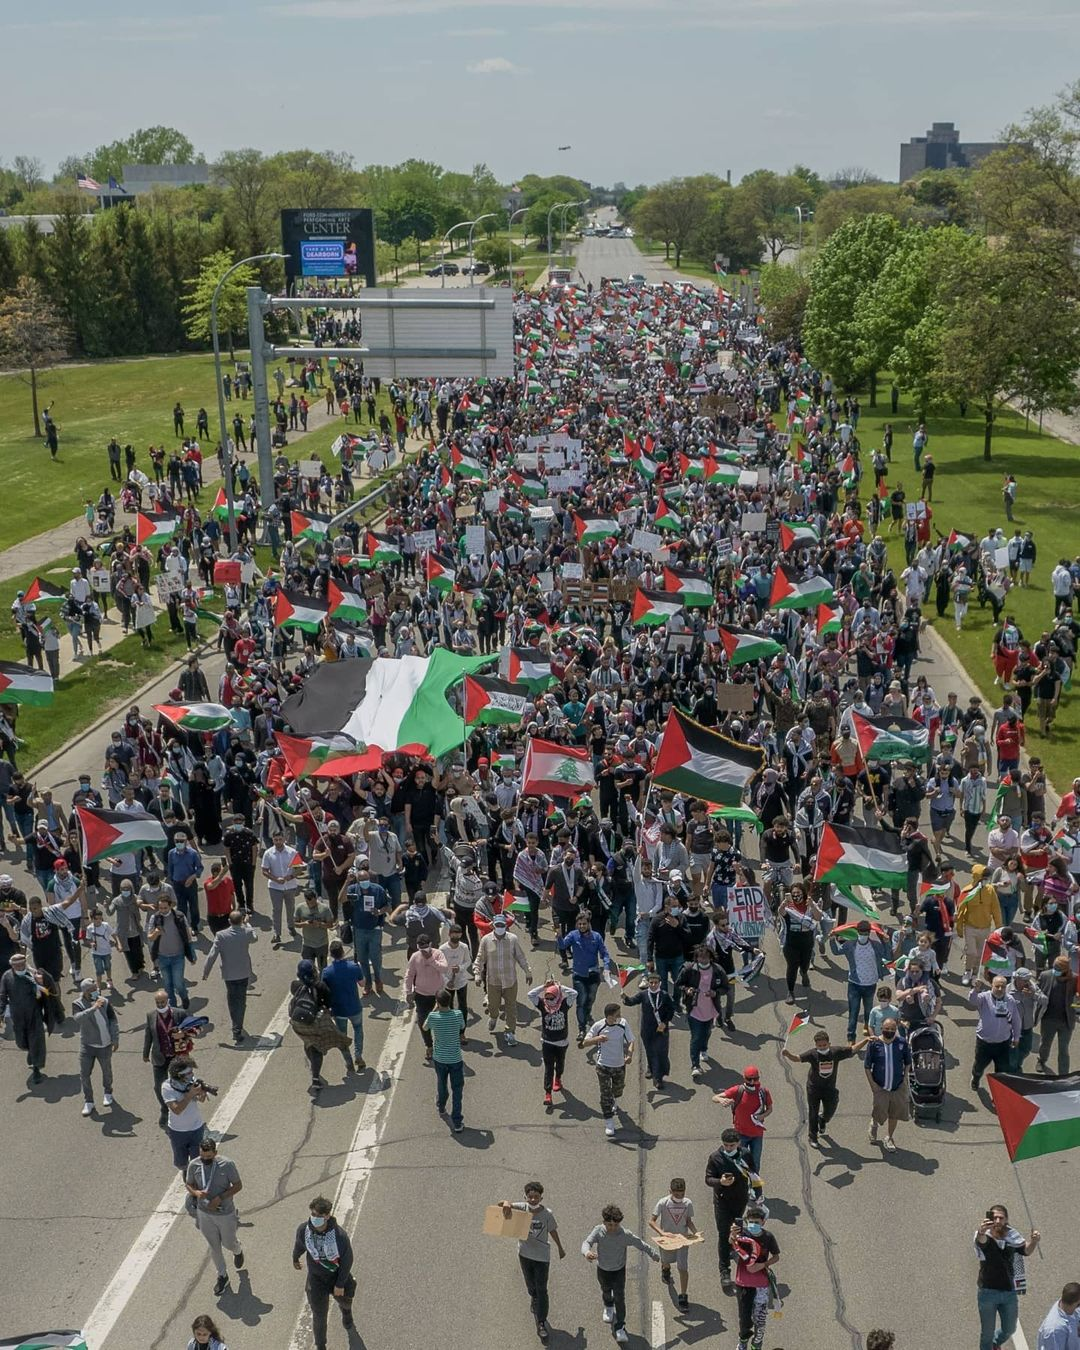 Thousands in Dearborn Protest in Solidarity With Palestinian Struggle